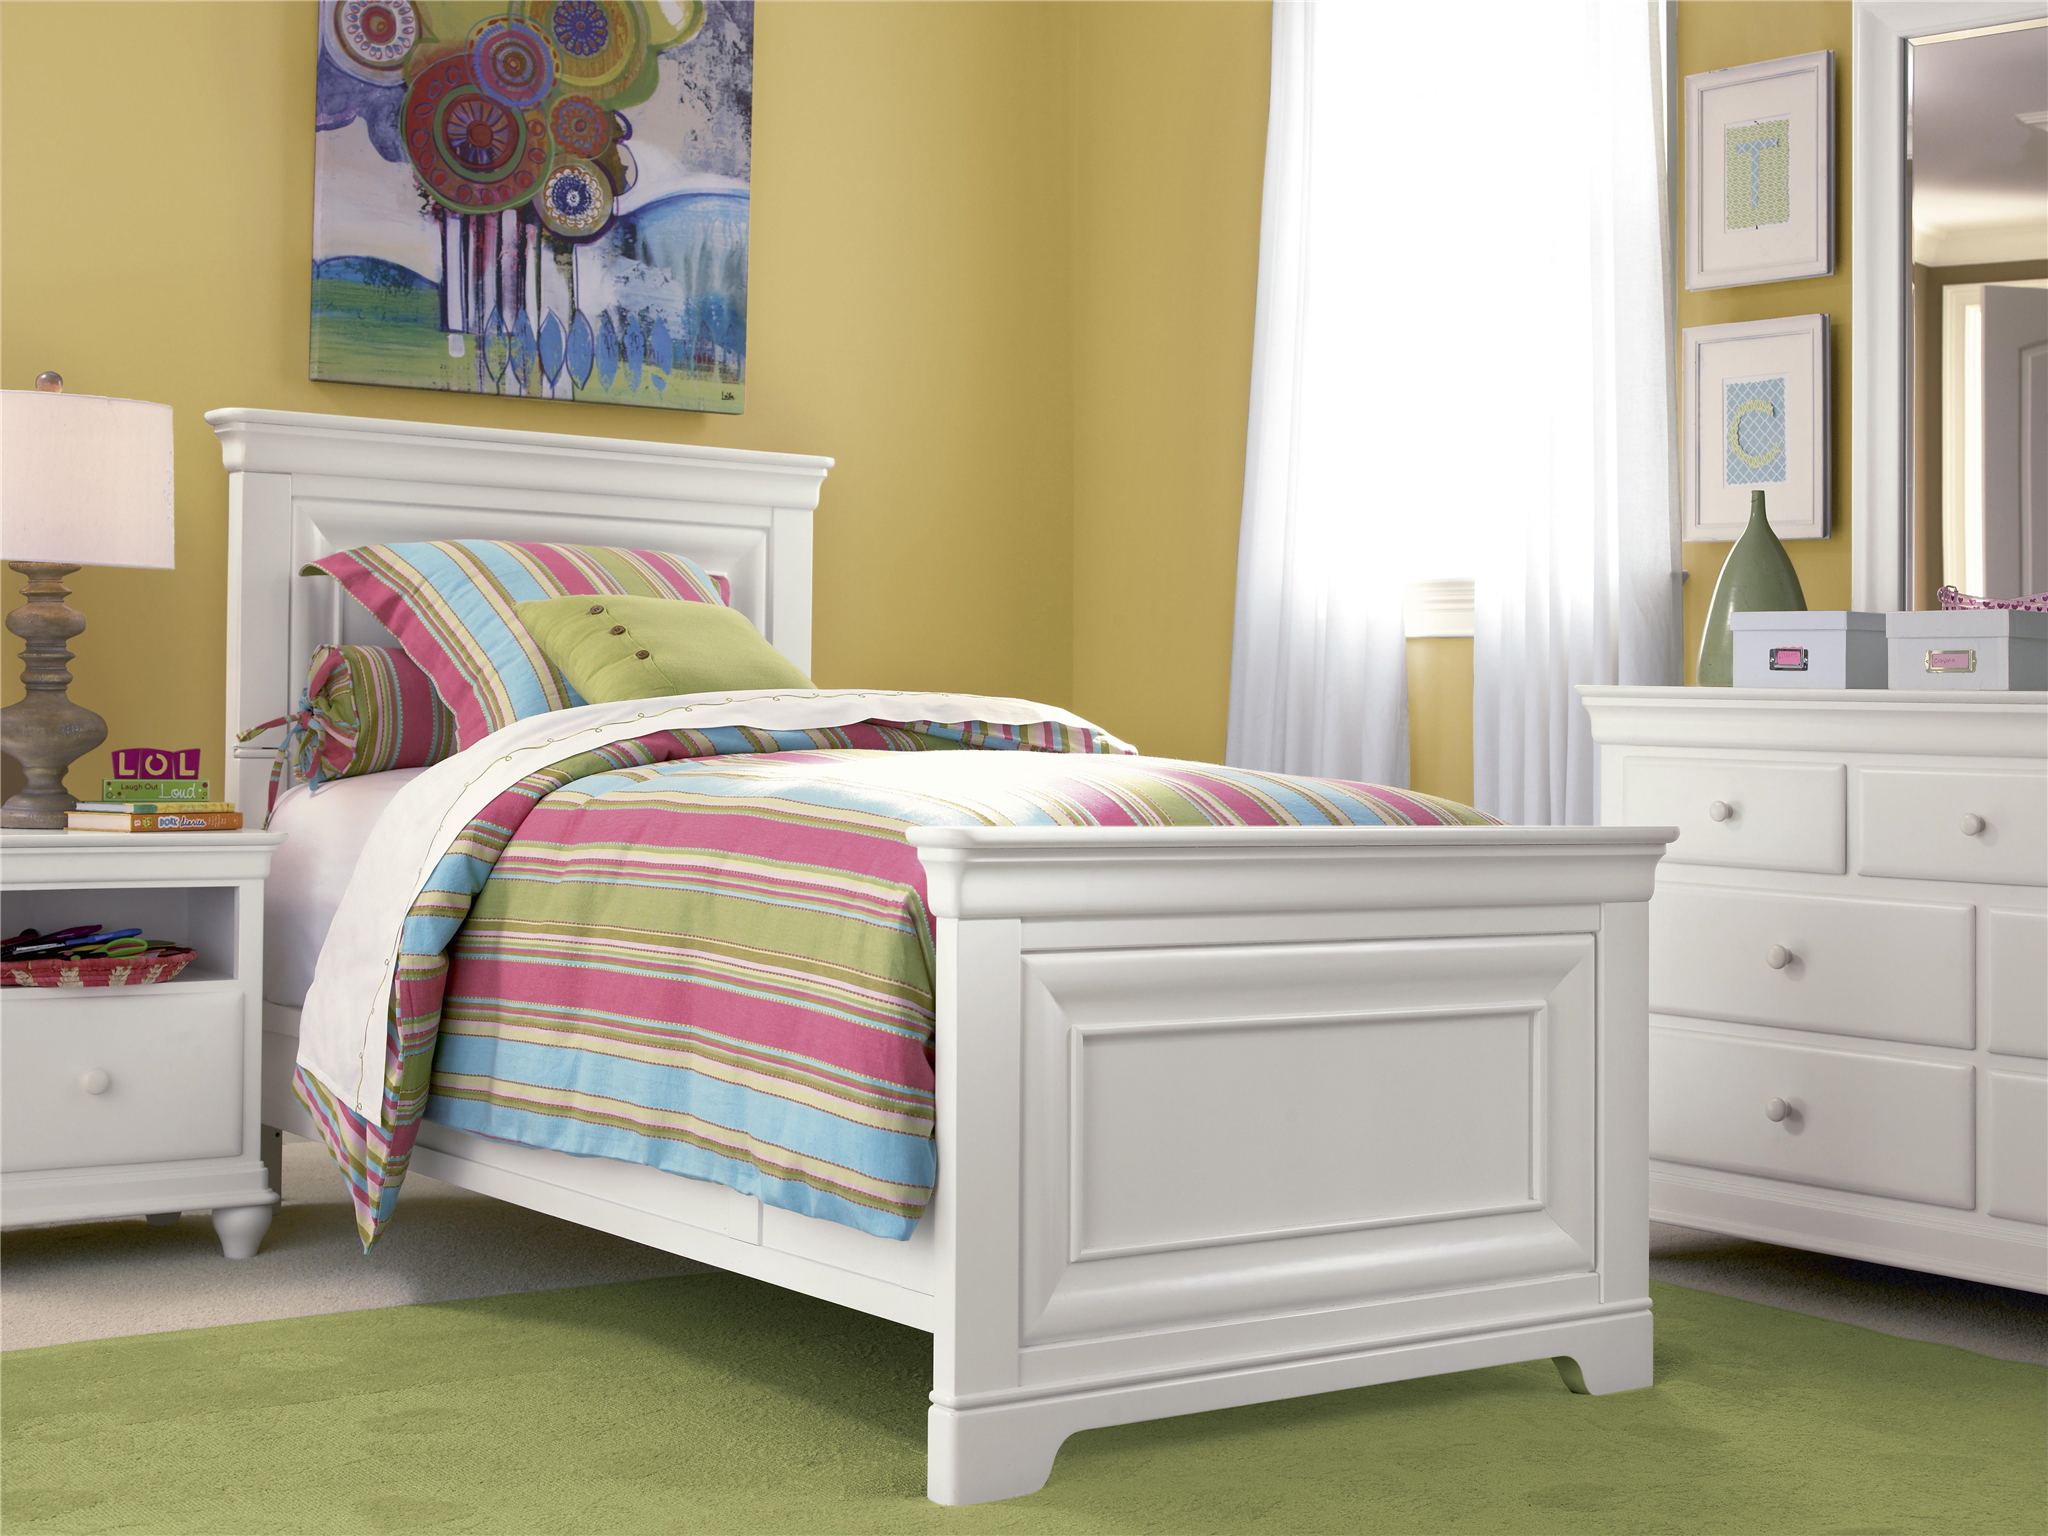 smartstuff furniture classics 4 0 twin panel bed 20140 | 131a yu rs14 035 002 032 080 vm 001